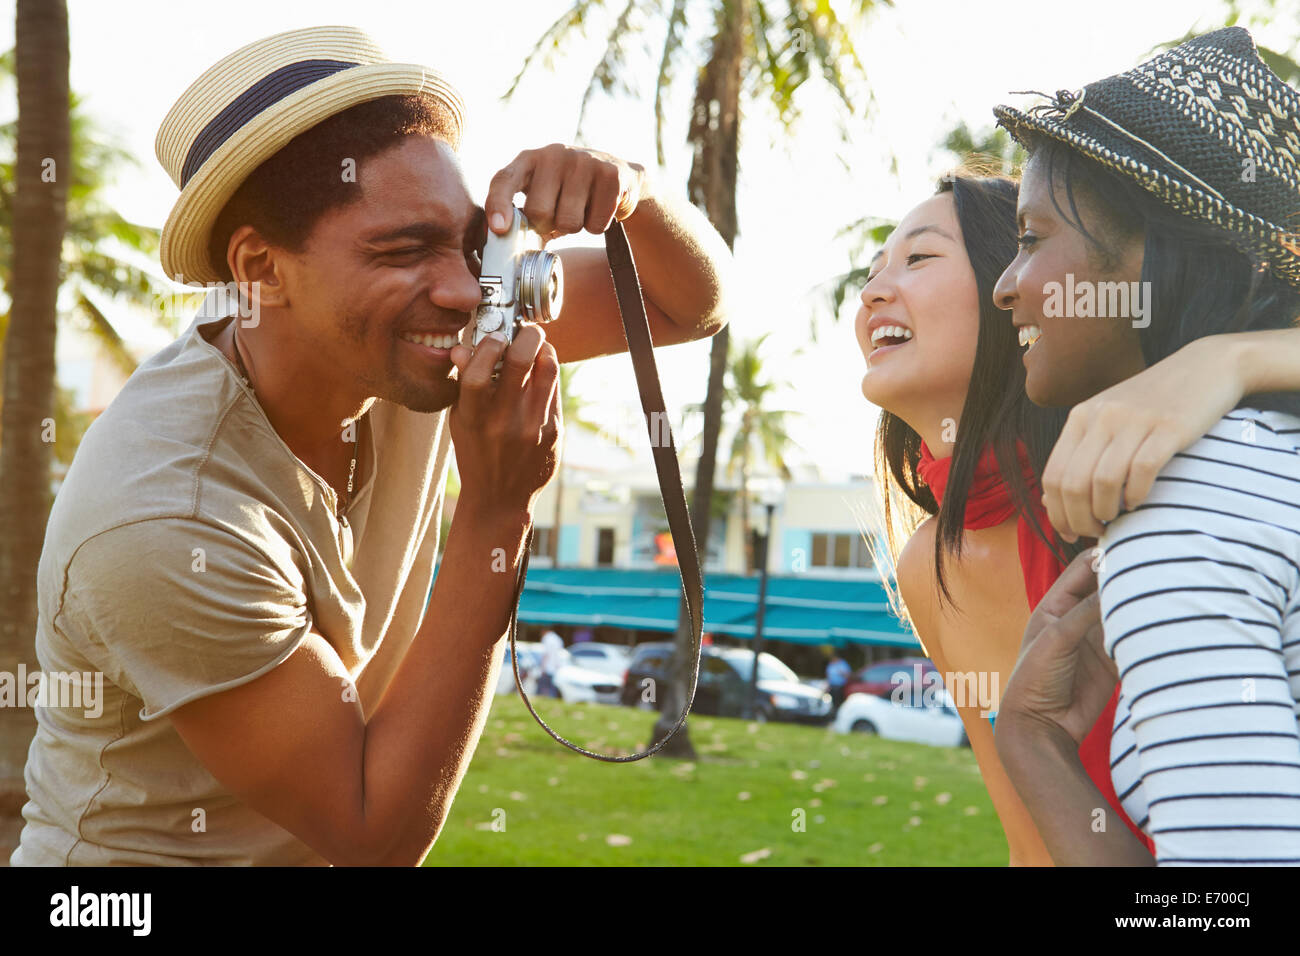 Man Taking Photograph Of Women In Park - Stock Image